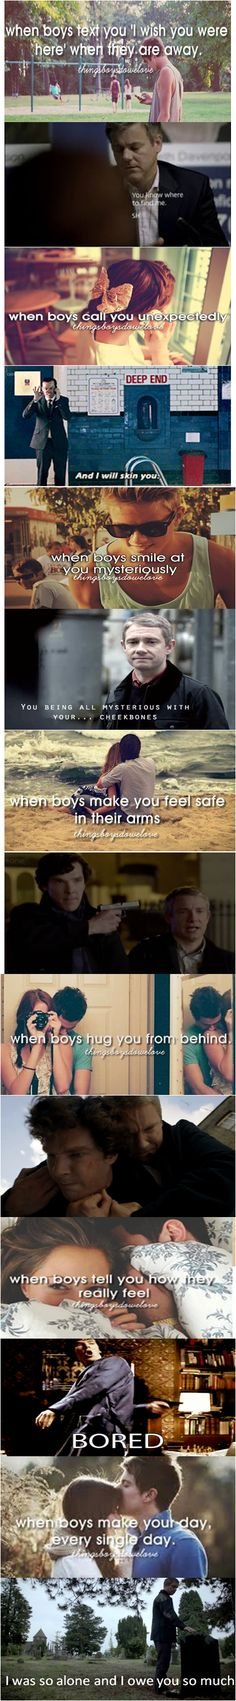 So at first I just thought it was a set of Johnlock pictures, meant to be funny...then the last one was painful.  This show.